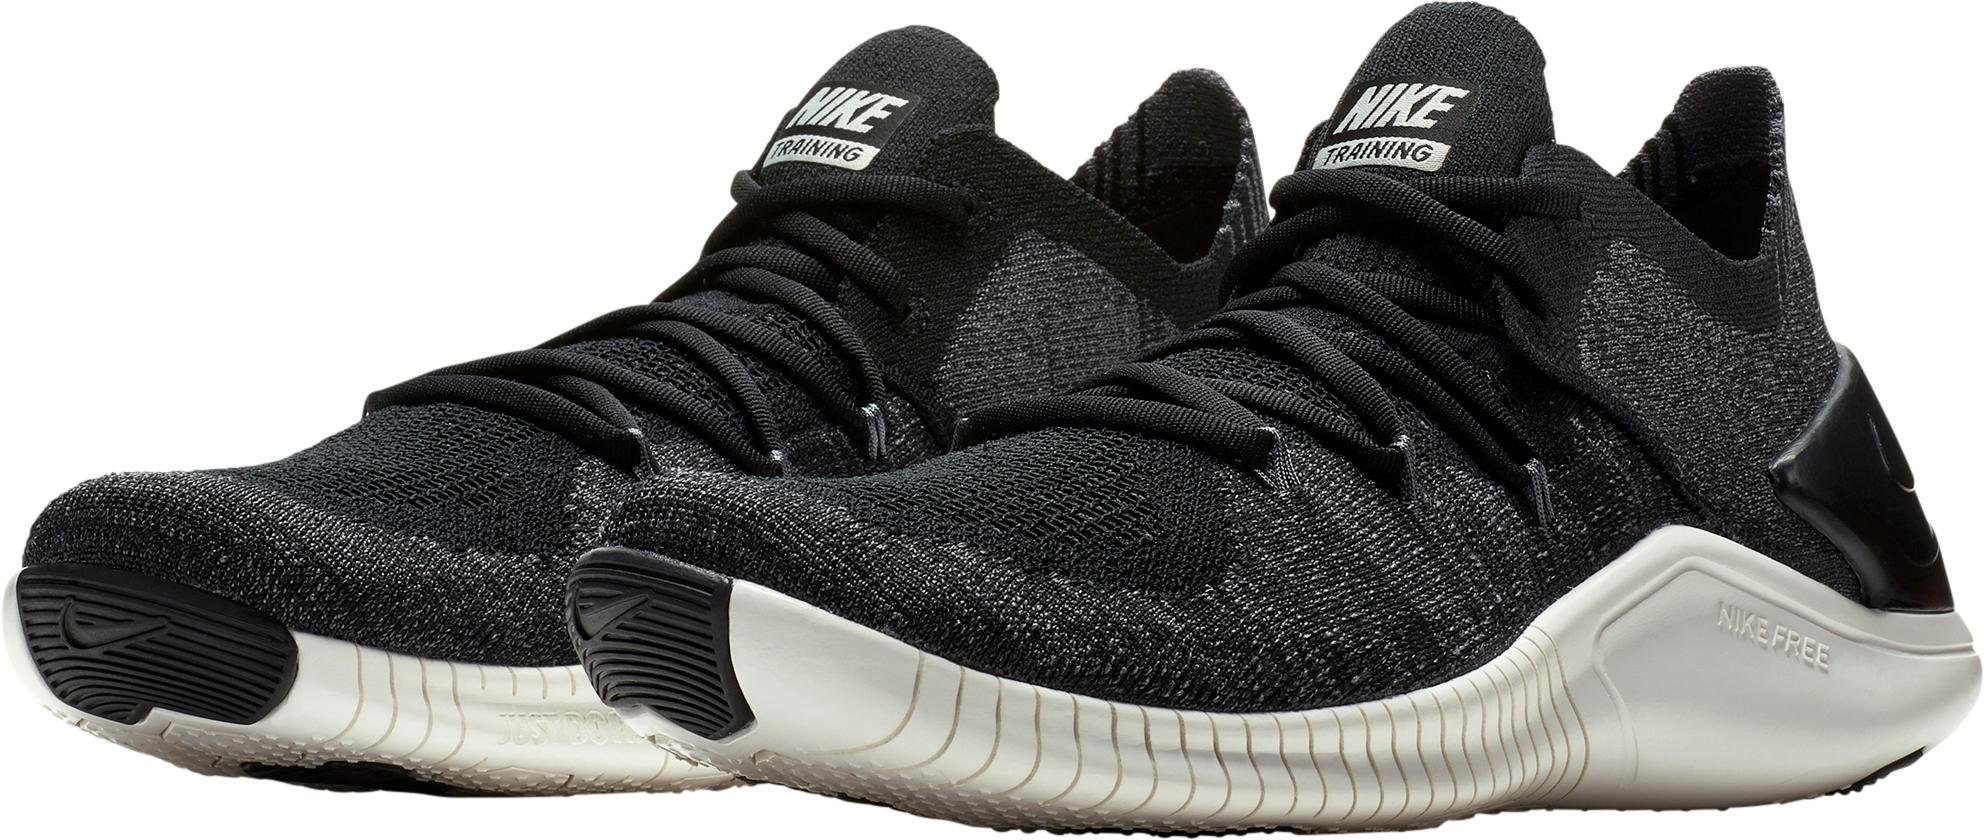 Nike »Wmns Free Trainer Flyknit 3« Trainingsschuh | OTTO